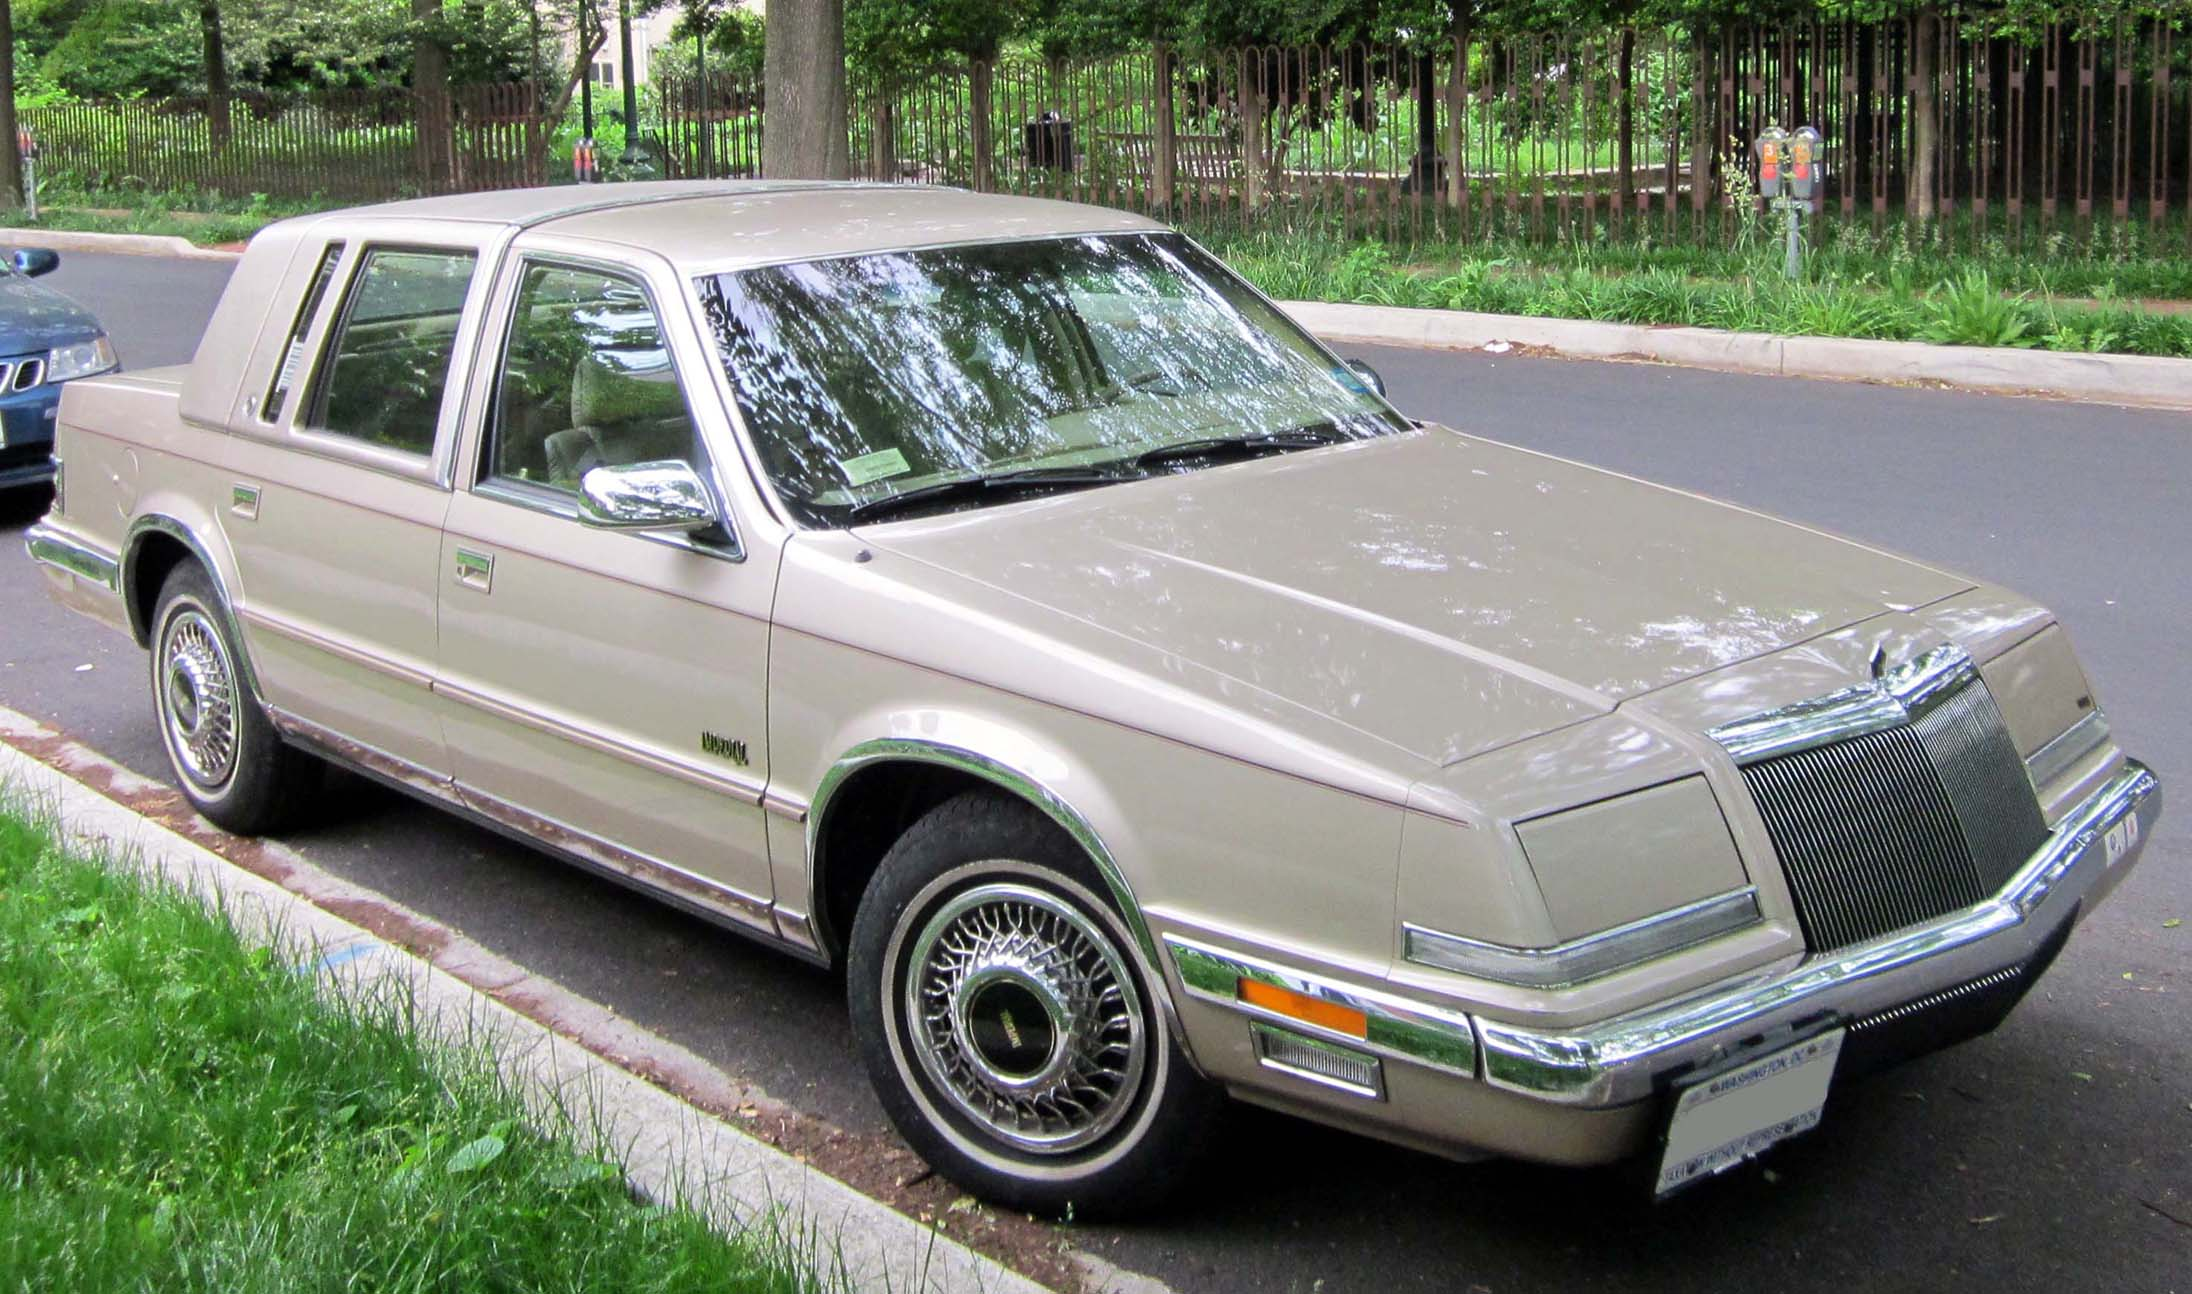 1992 Chrysler Imperial Information And Photos Zombiedrive